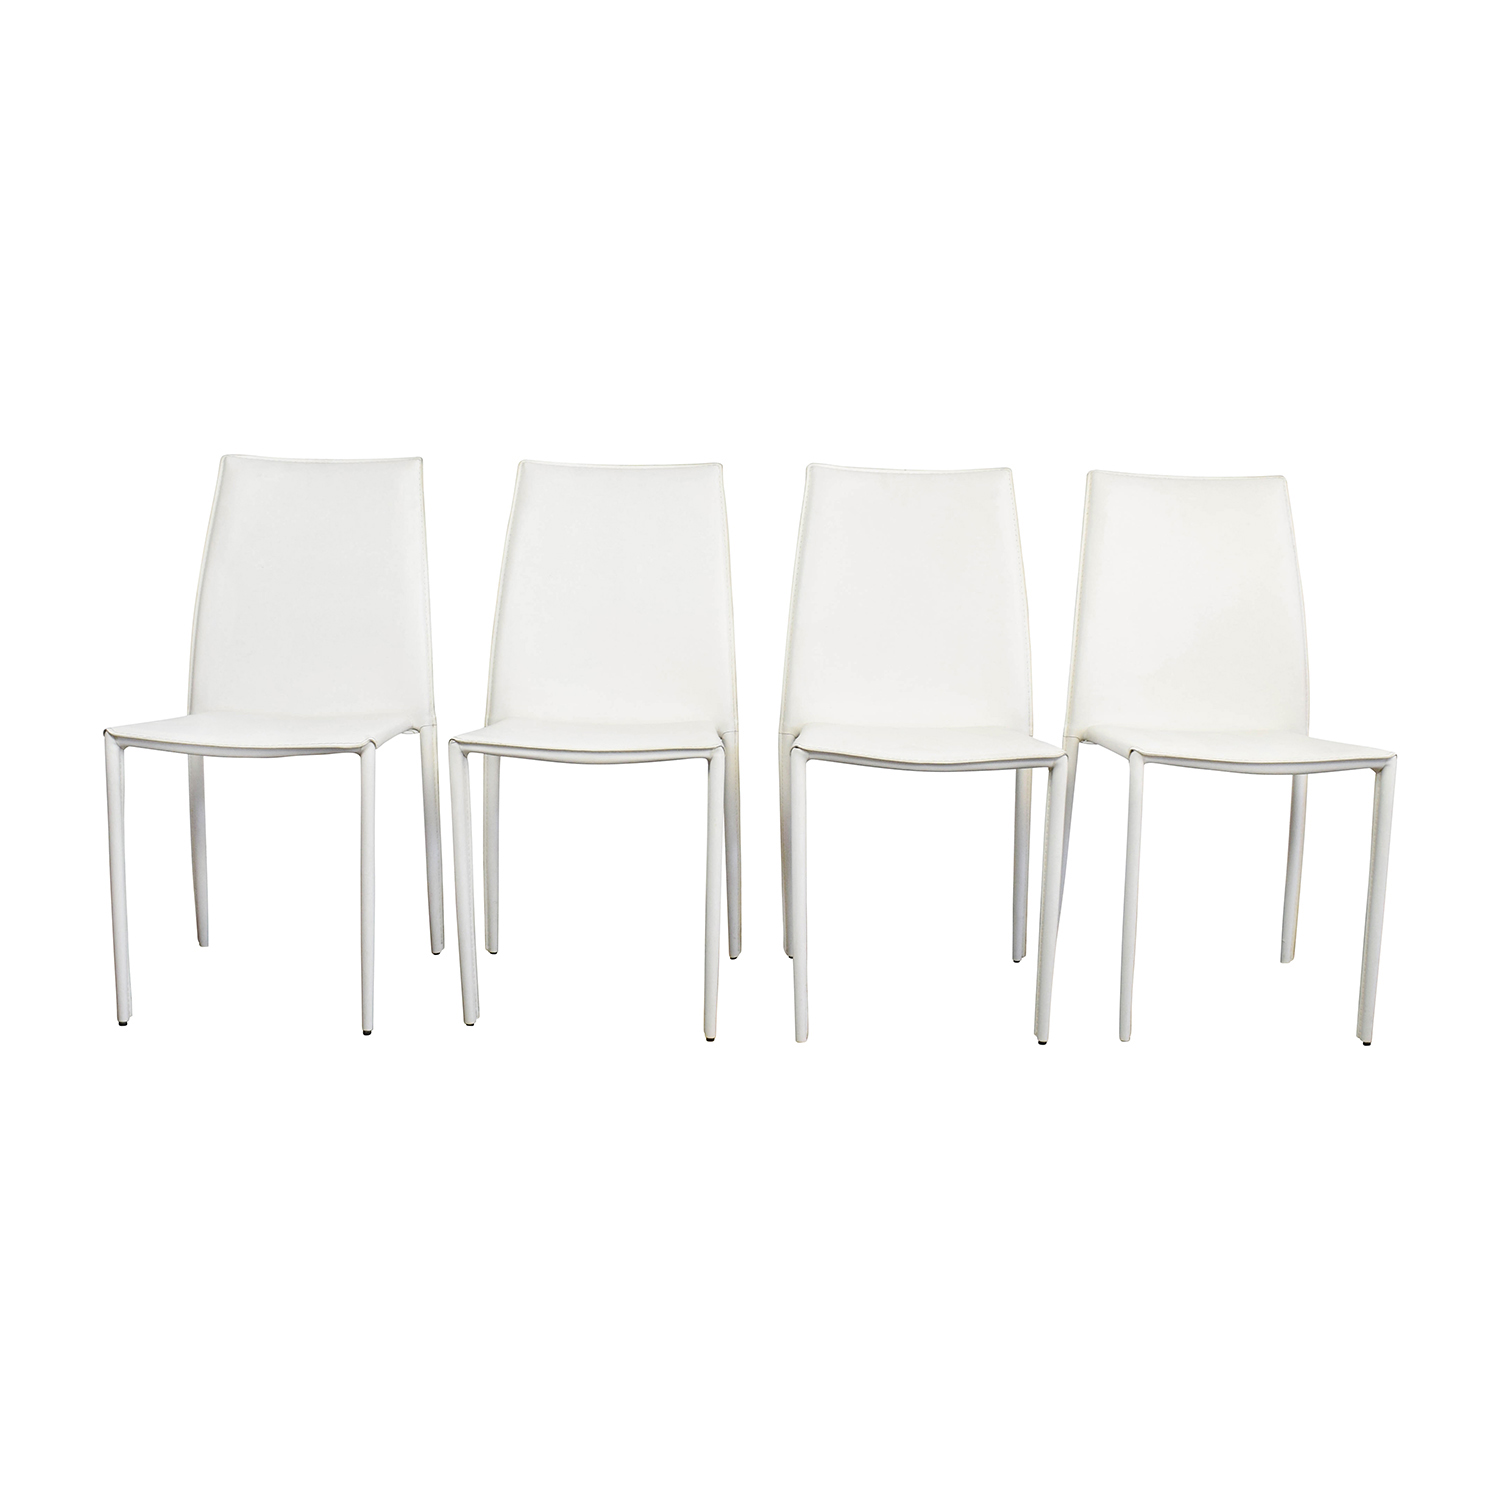 Awesome 77 Off Allmodern All Modern White Leather Dining Chairs Chairs Caraccident5 Cool Chair Designs And Ideas Caraccident5Info